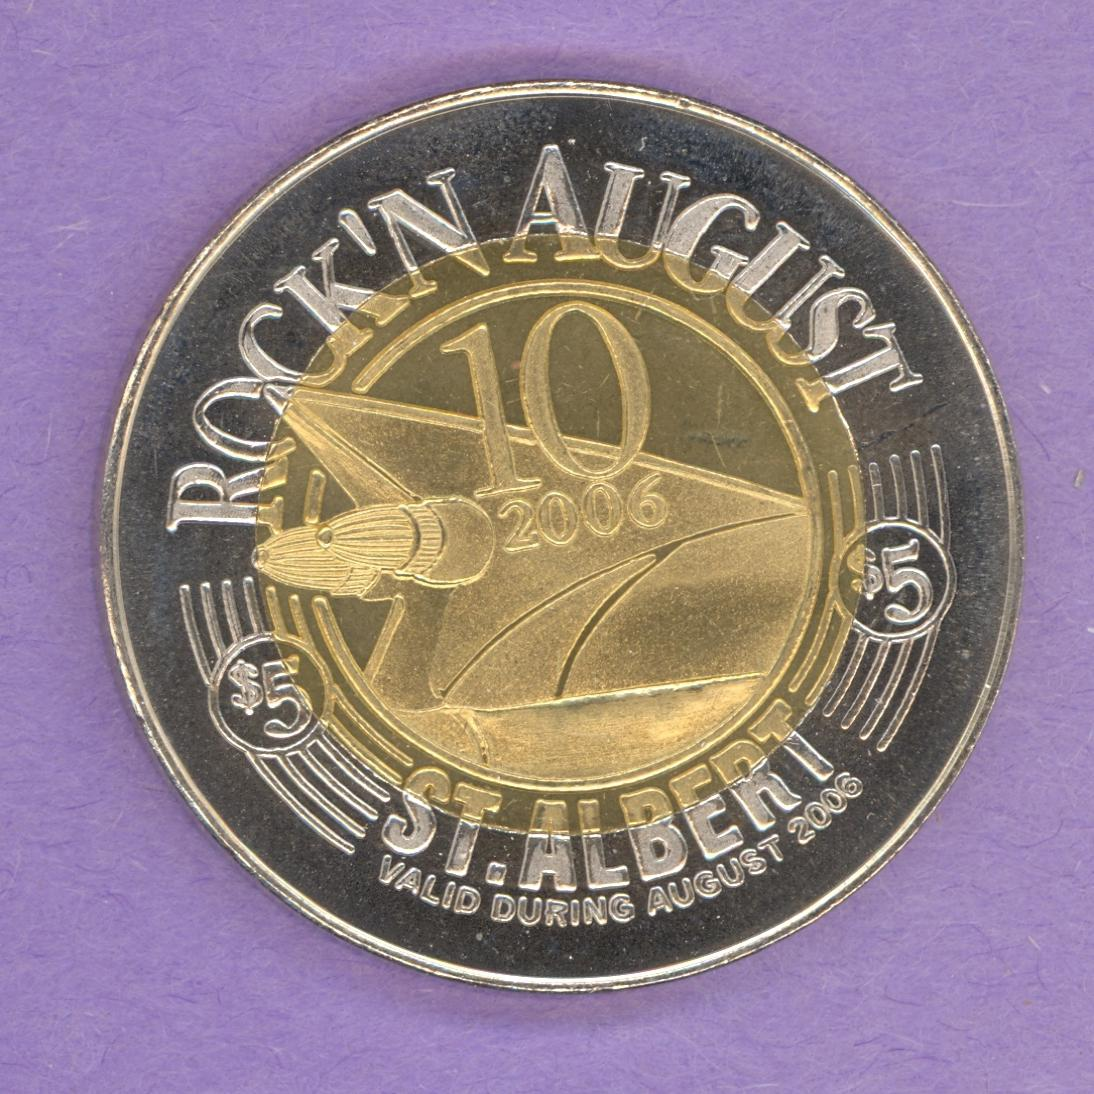 2006 St. Albert Alberta Trade Token Rock'n August Festival Cars Music Bimetallic